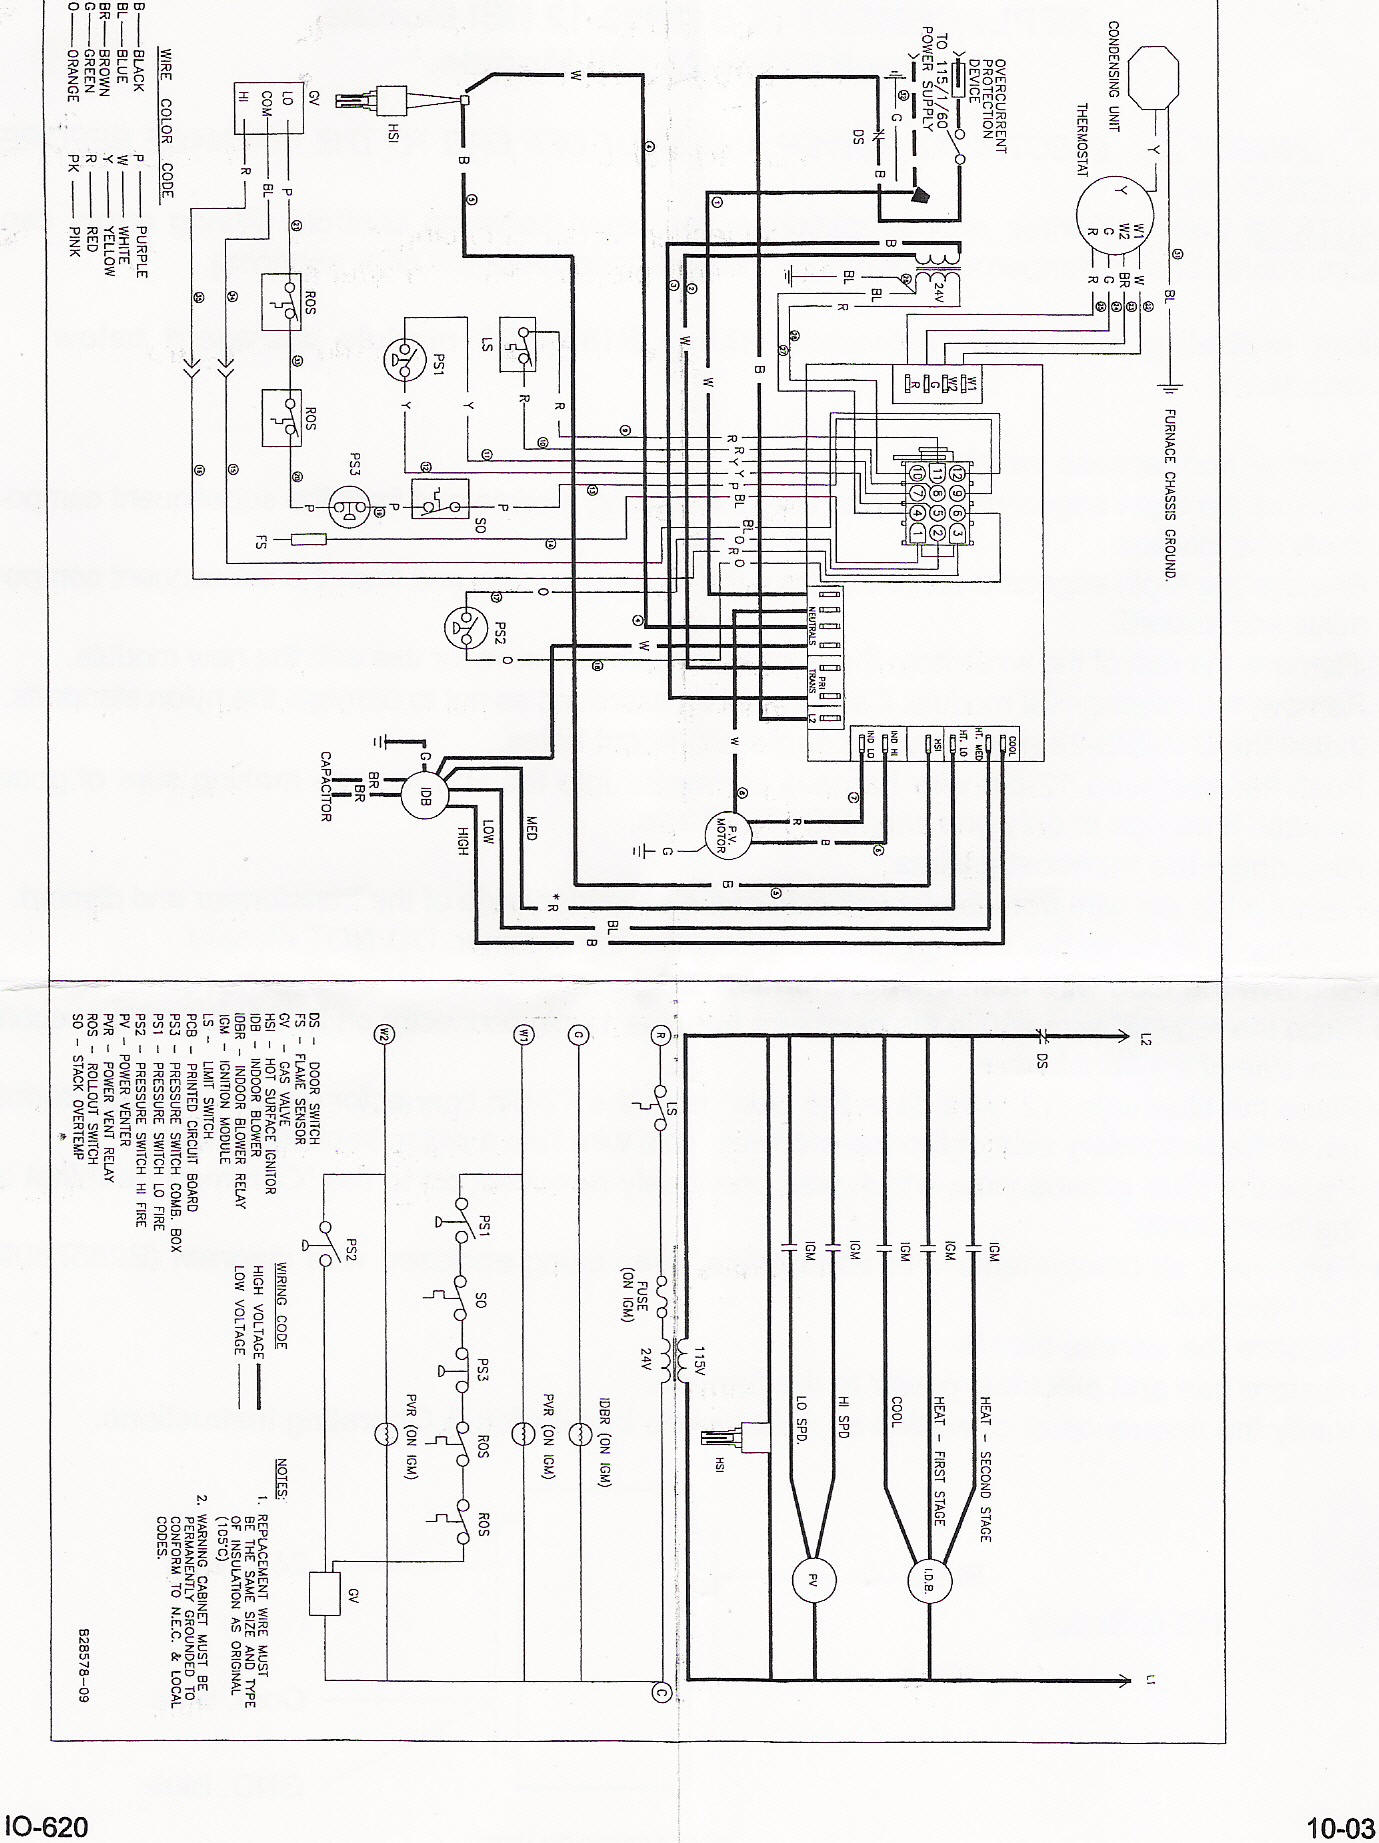 goodma2 instr goodman control board b18099 23 instructions goodman package unit heat pump wiring diagram at readyjetset.co